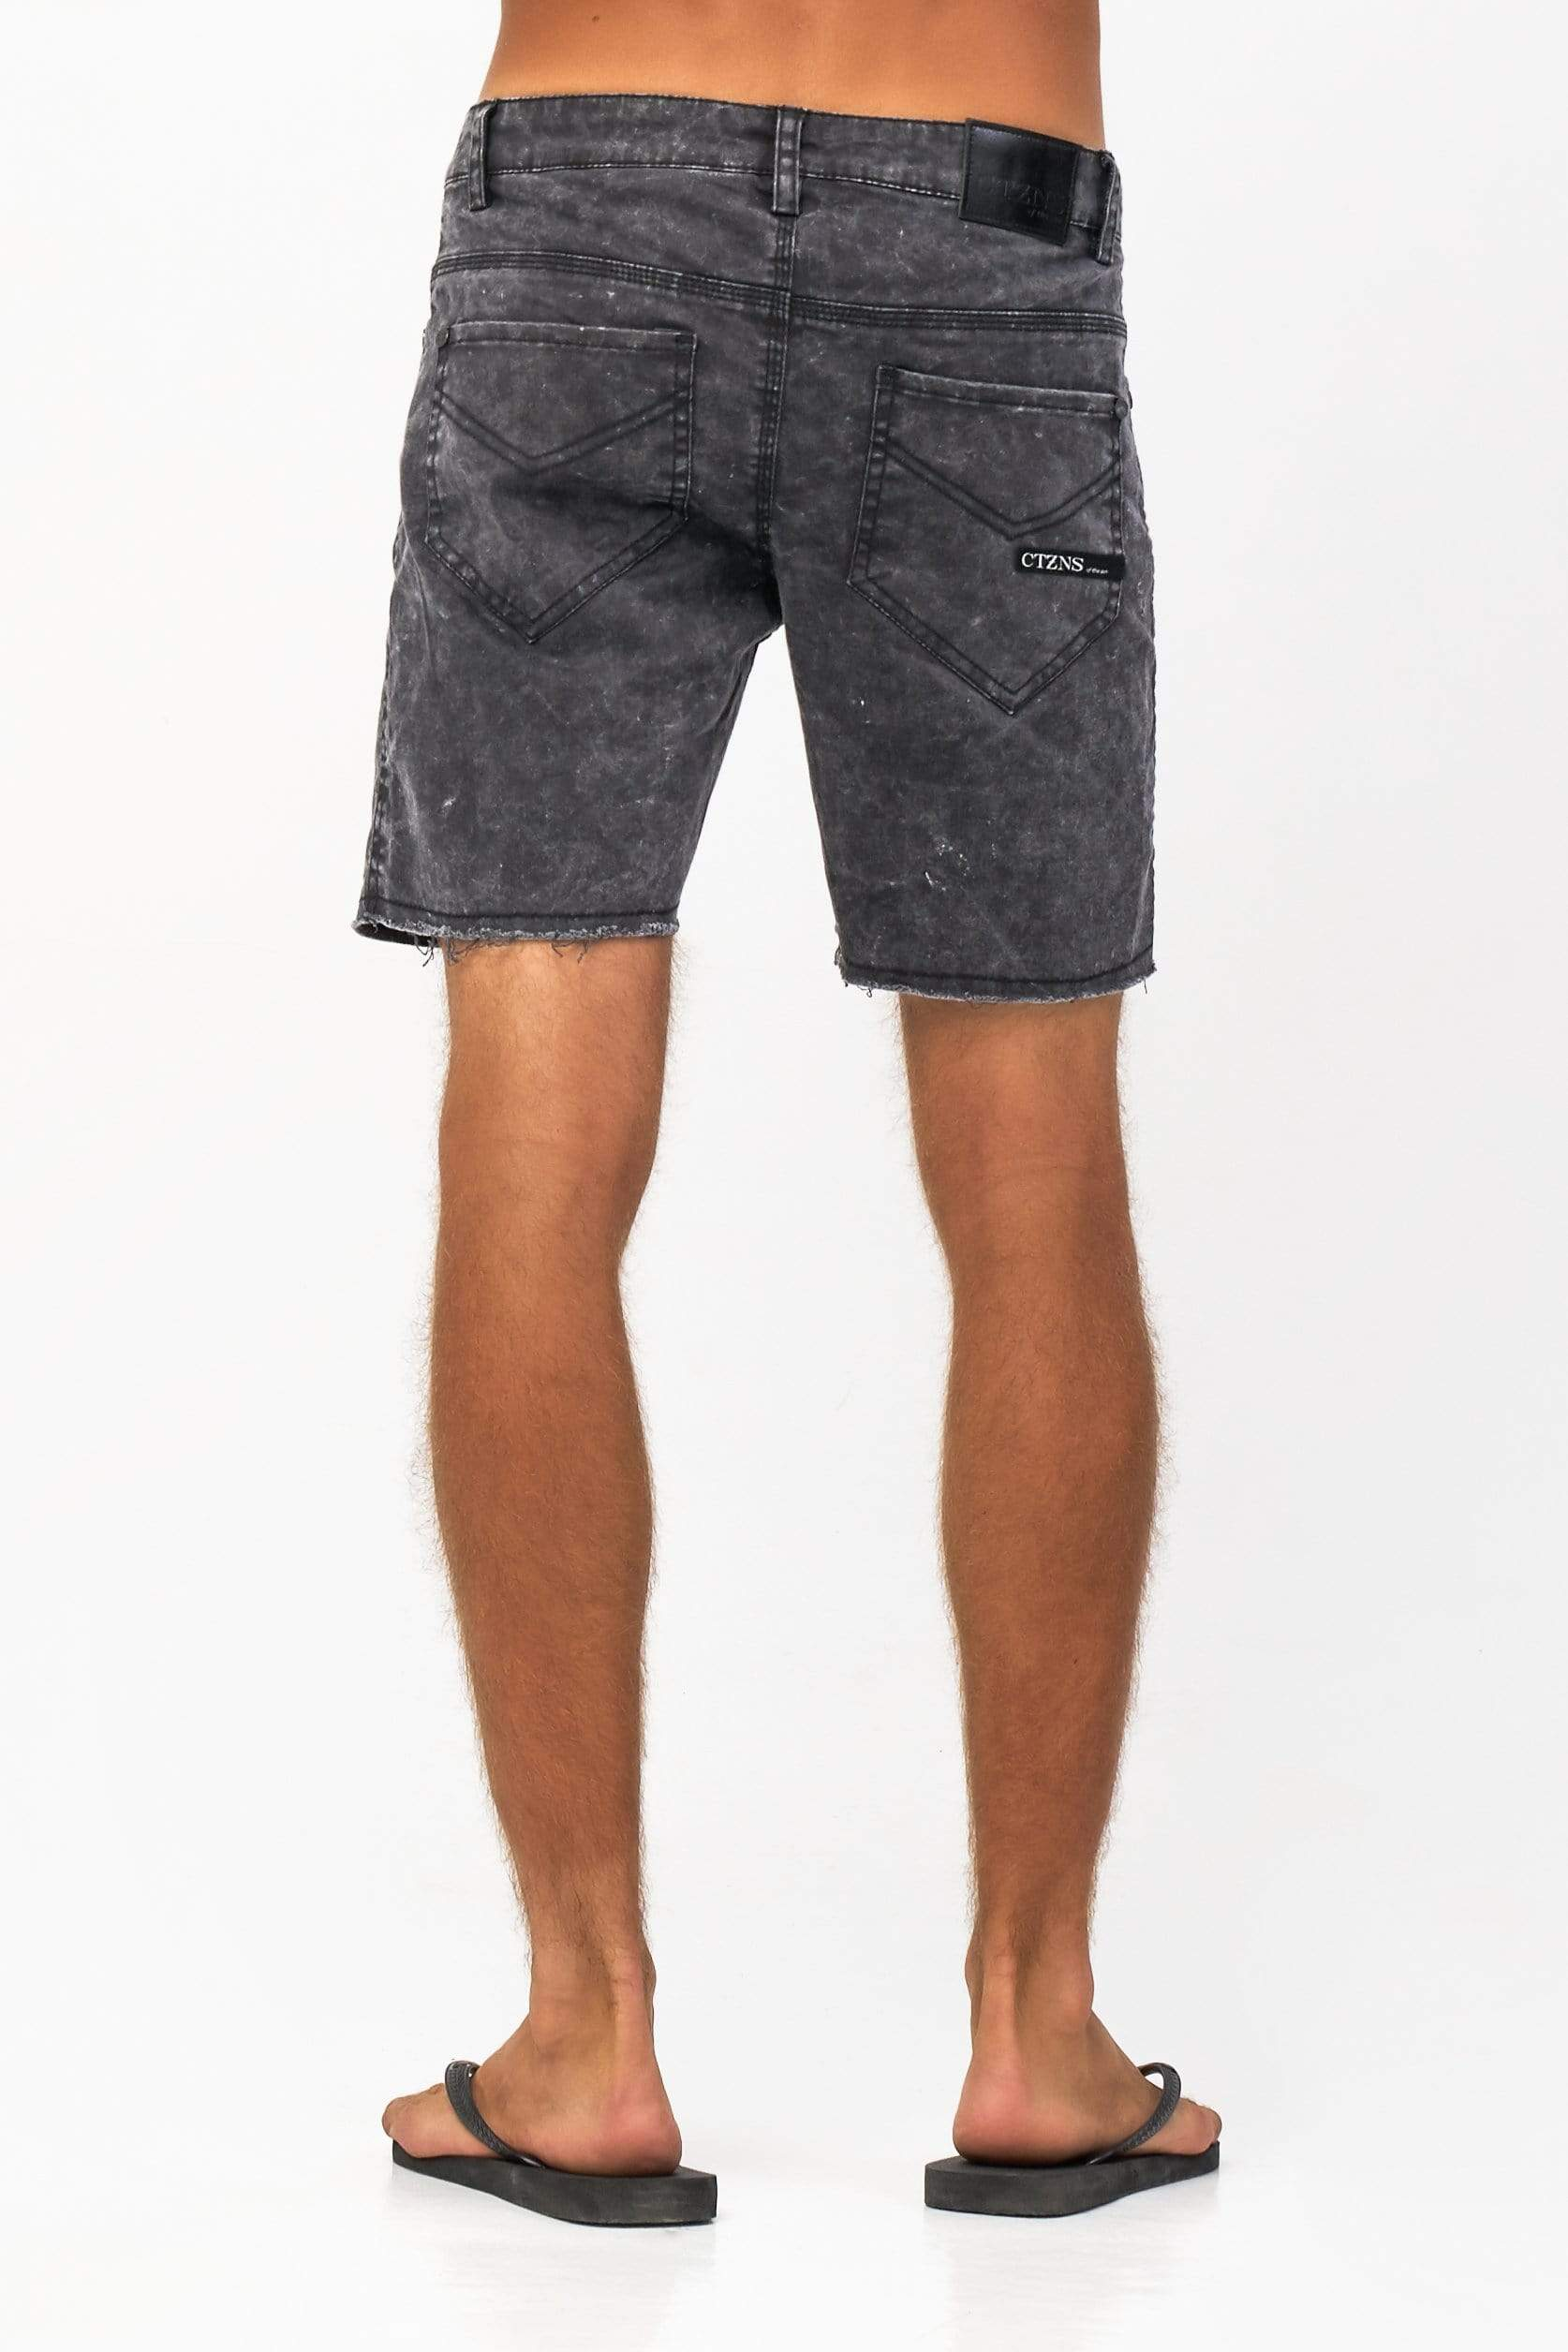 Gibson Short - Man Short - CITIZENS